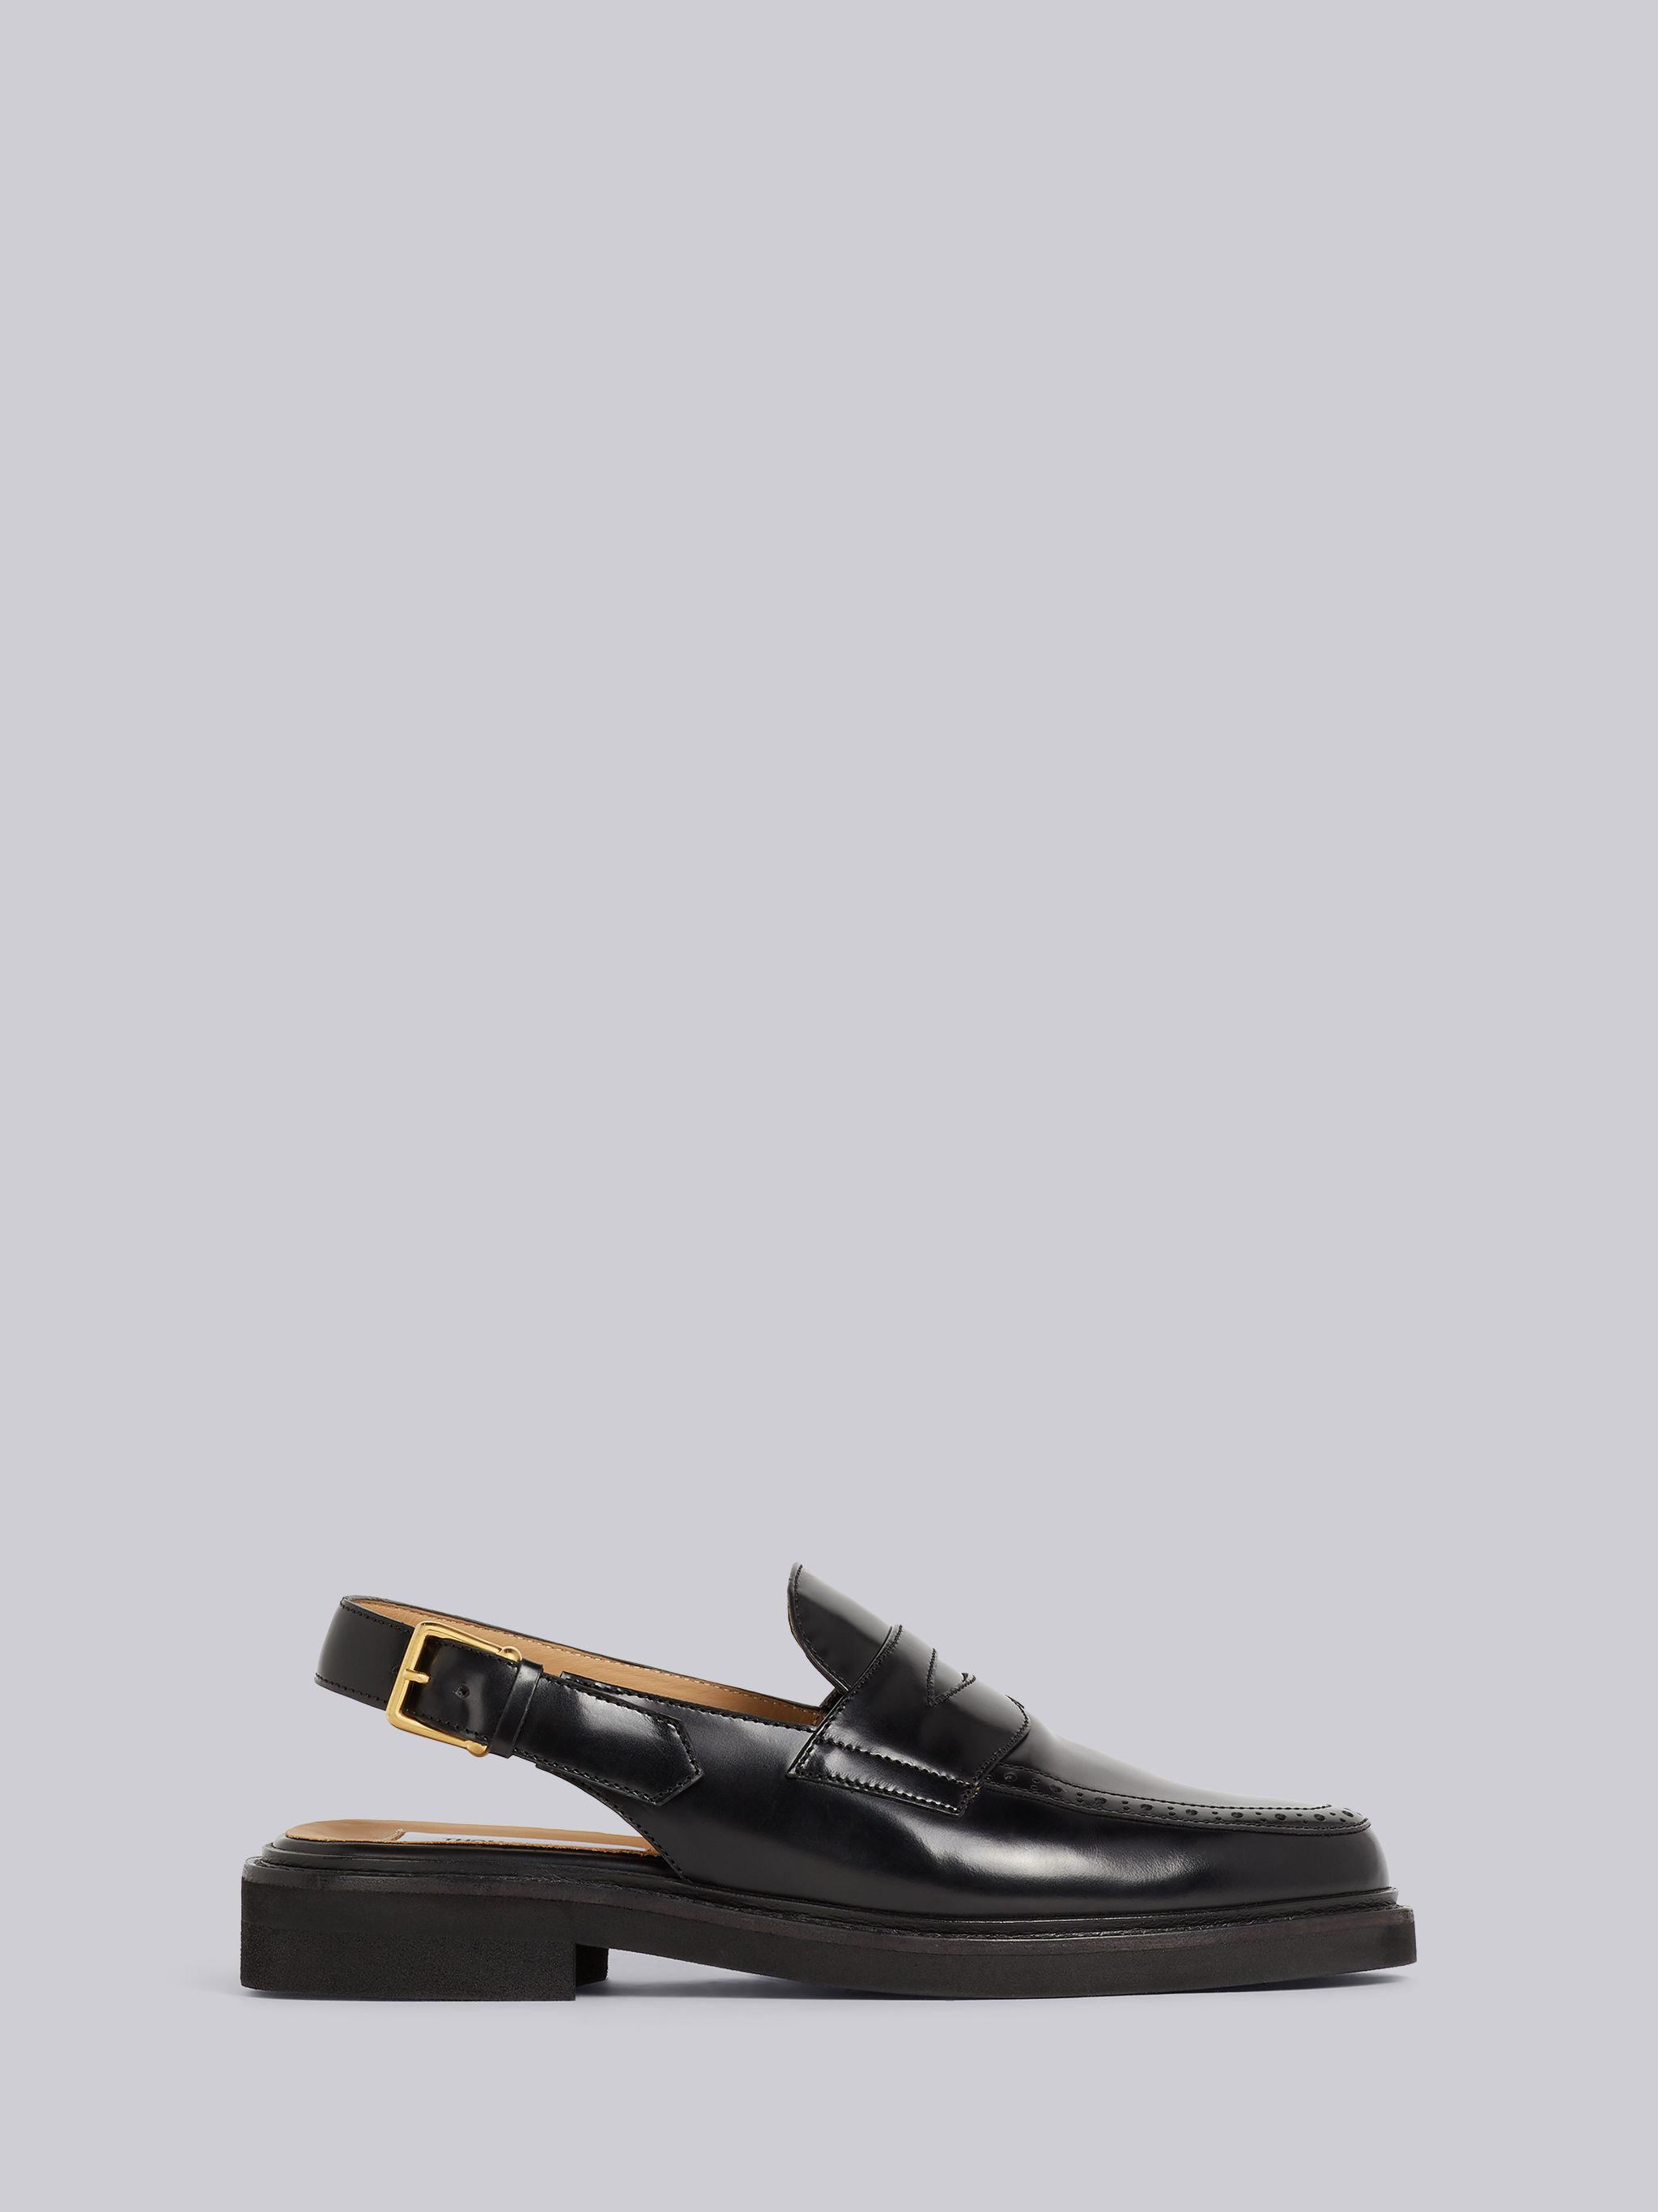 Black Calf Leather Micro Sole Slingback Penny Loafer